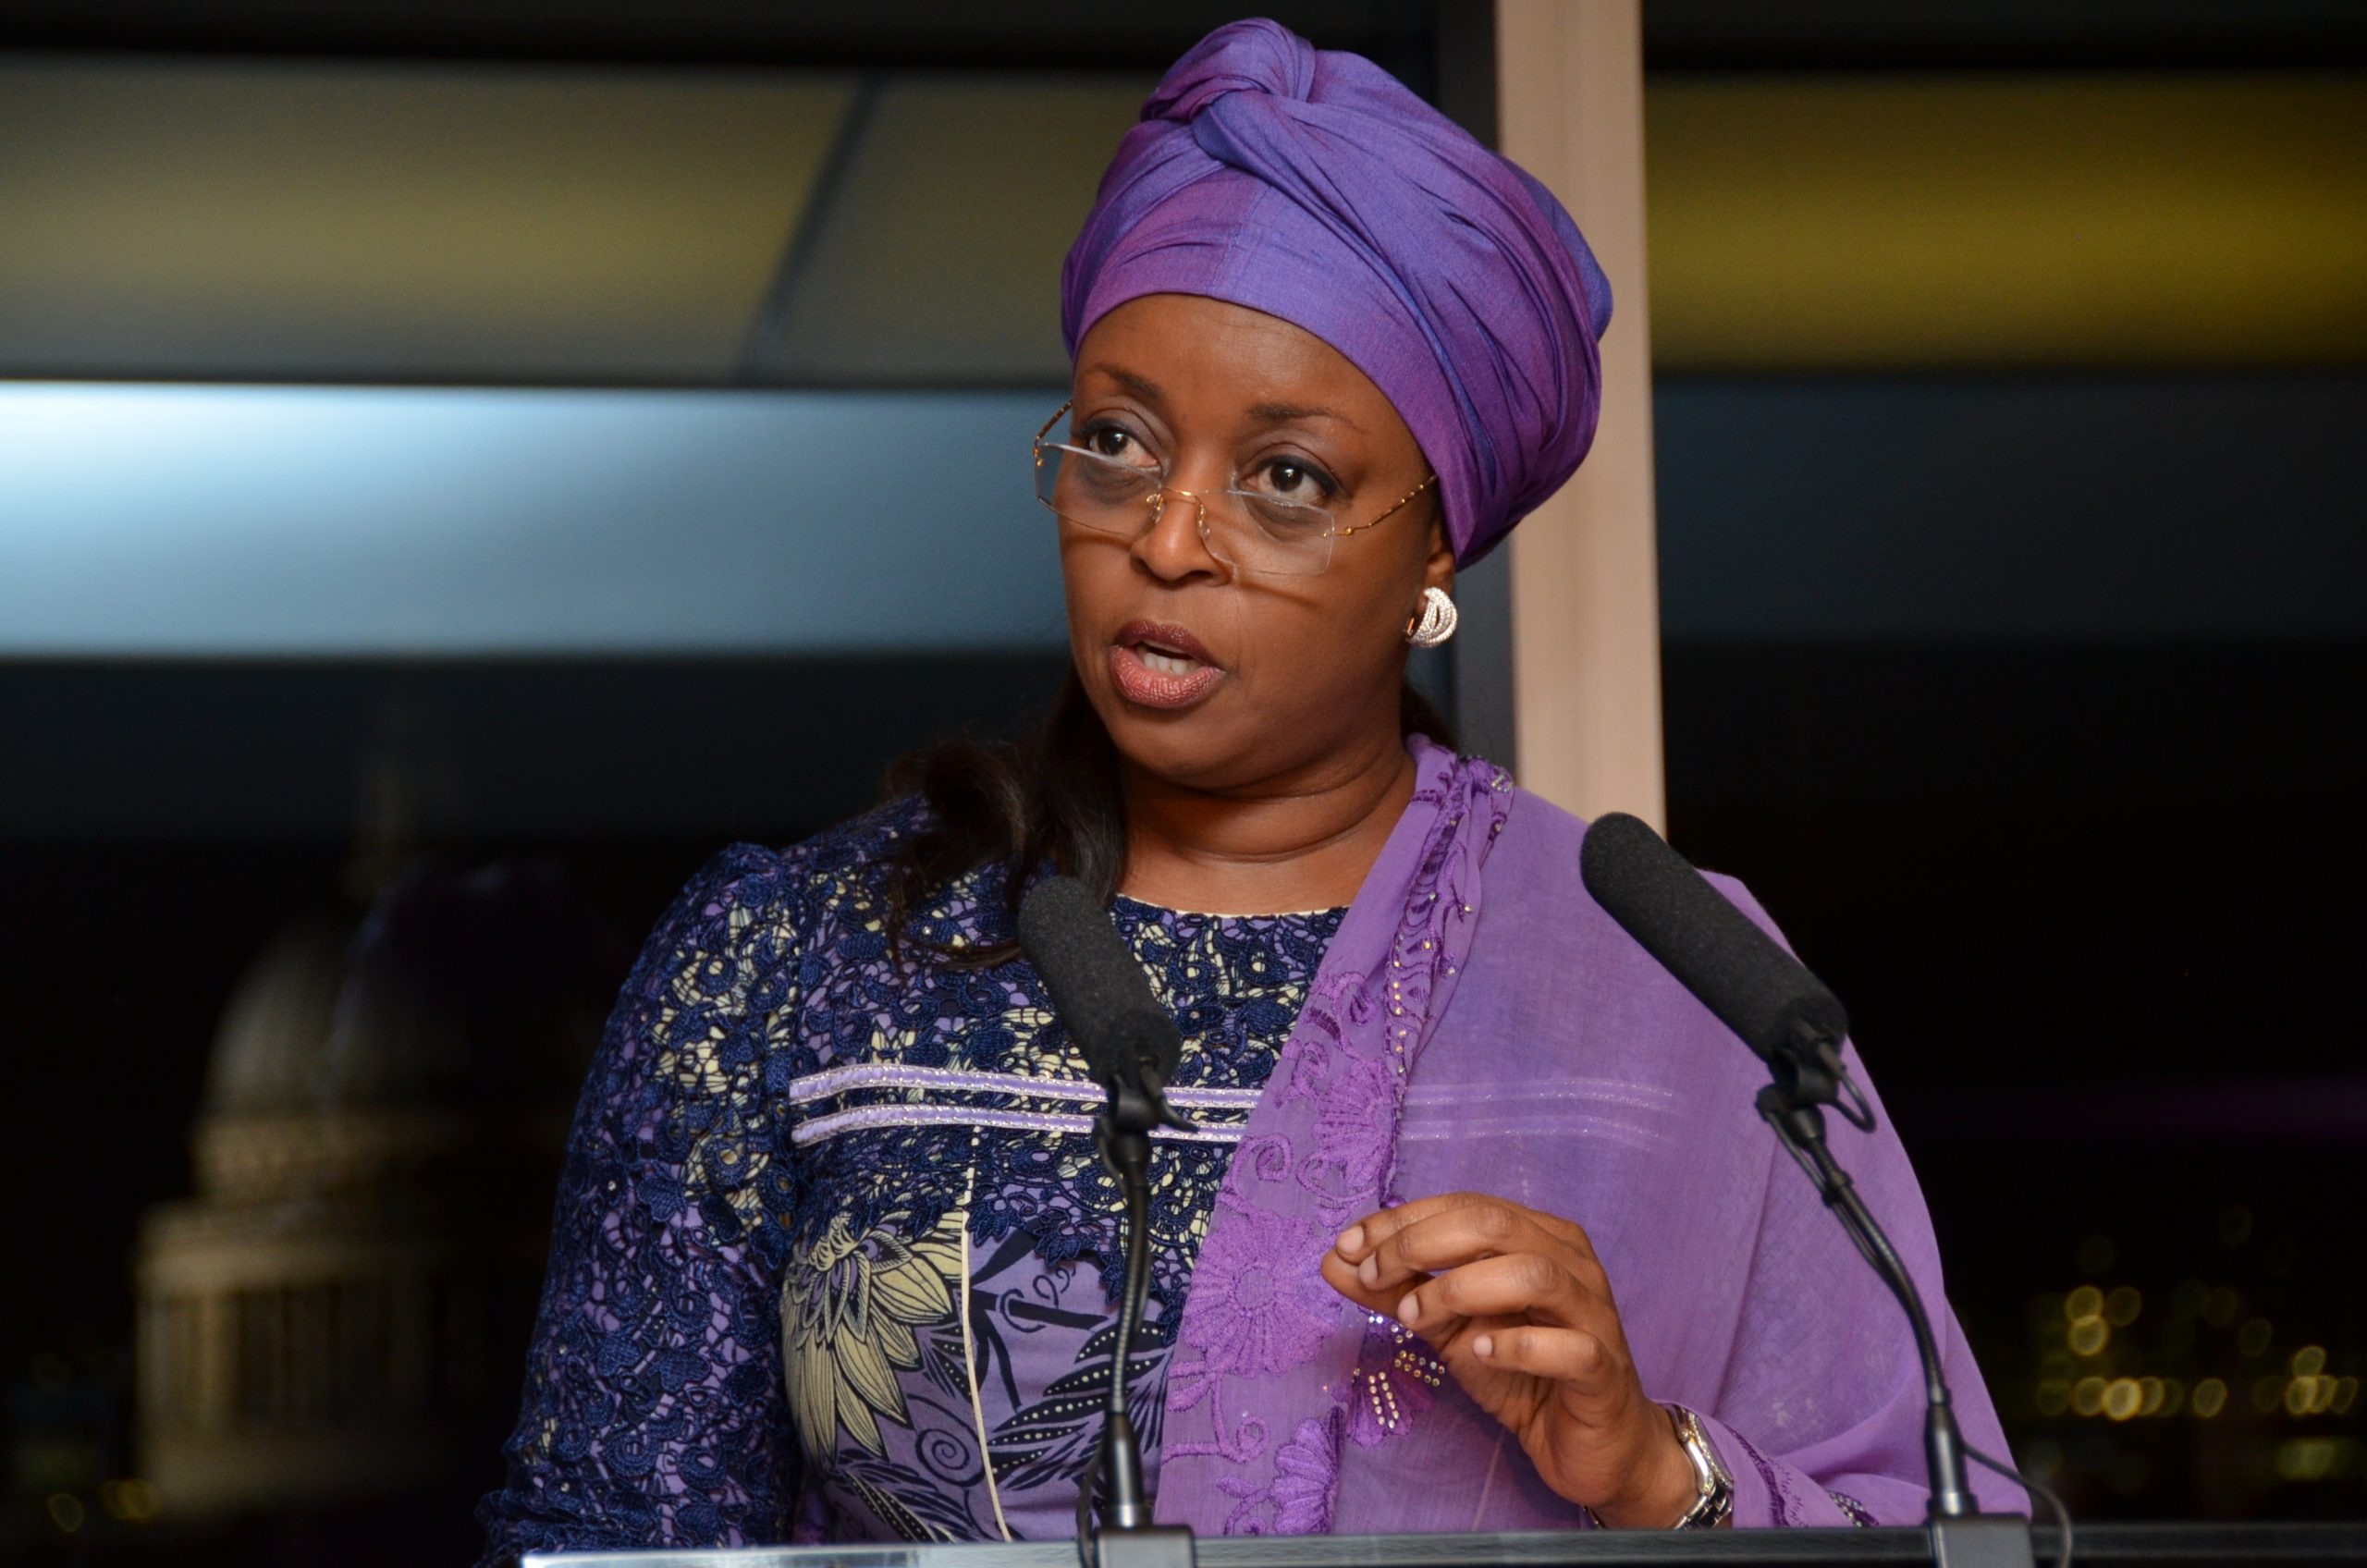 Watch Video:Yahoo Yahoo boys have become the role models of Nigerian youths- ex-Petroleum Minister, Diezani Alison-Madueke